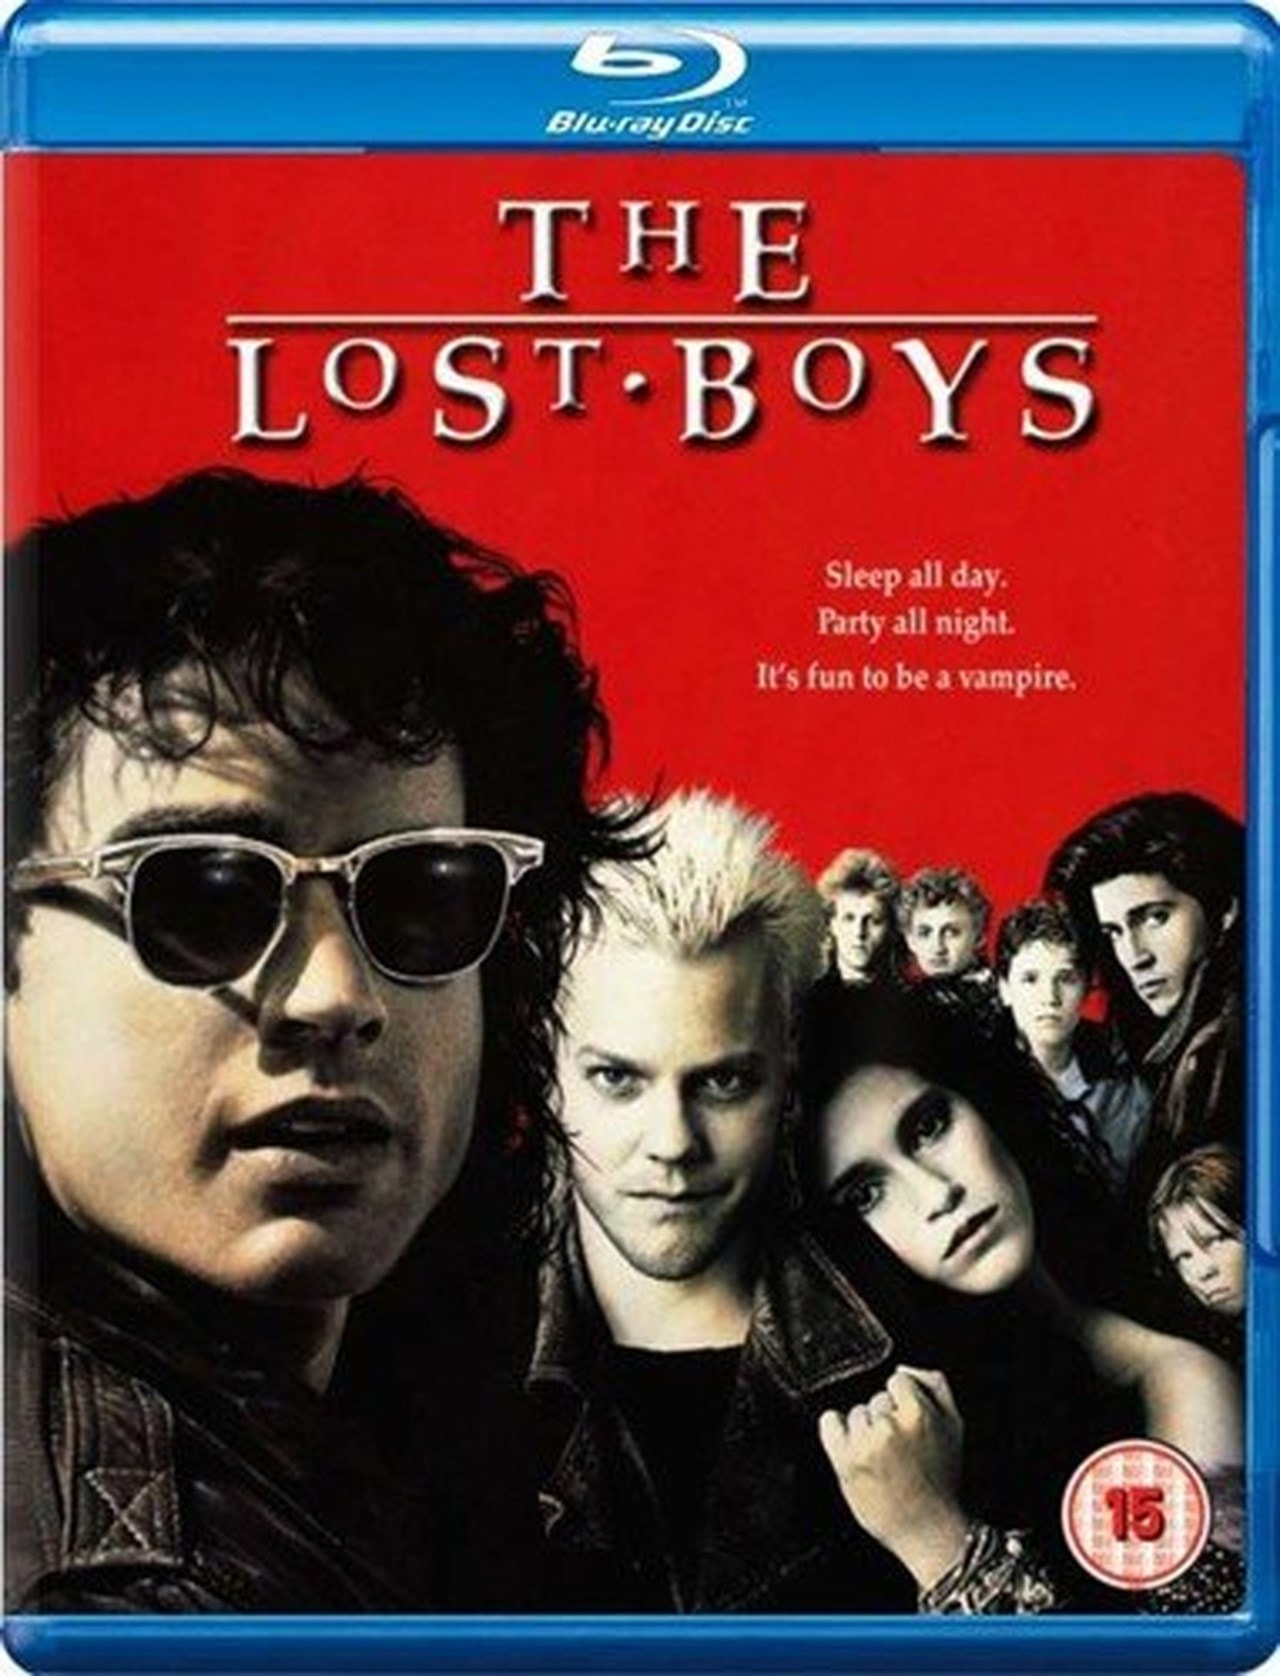 The Lost Boys - 3